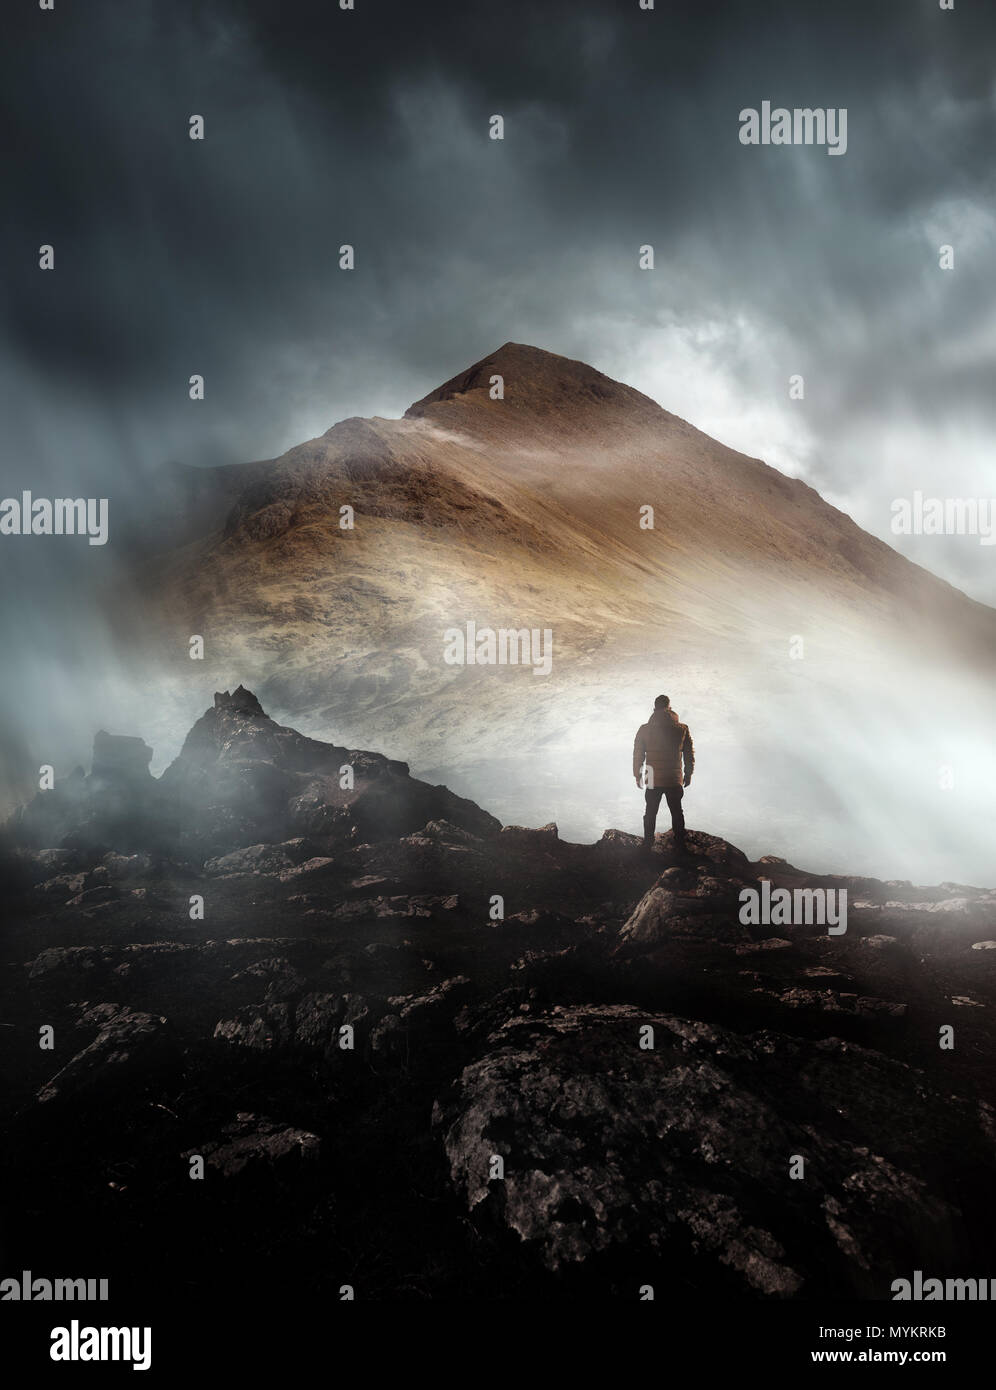 A person hiking looks onwards at a mountain shrouded in mist and clouds with the peak visible. Scenic landscape photo composite. - Stock Image